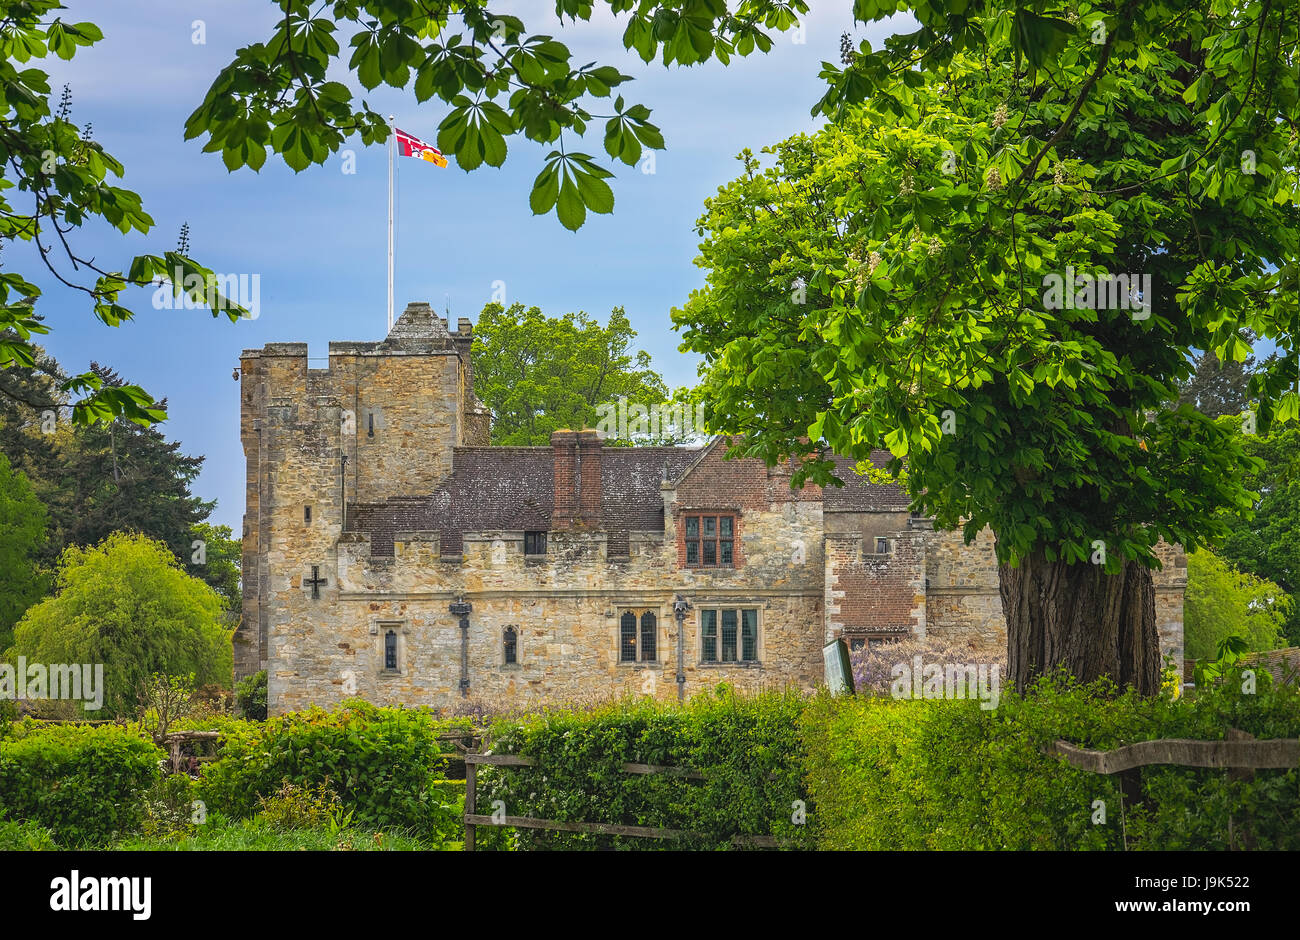 Hever Castle, England -  April 2017 : Hever Castle  located in the village of Hever, Kent, built in the 13th century, - Stock Image